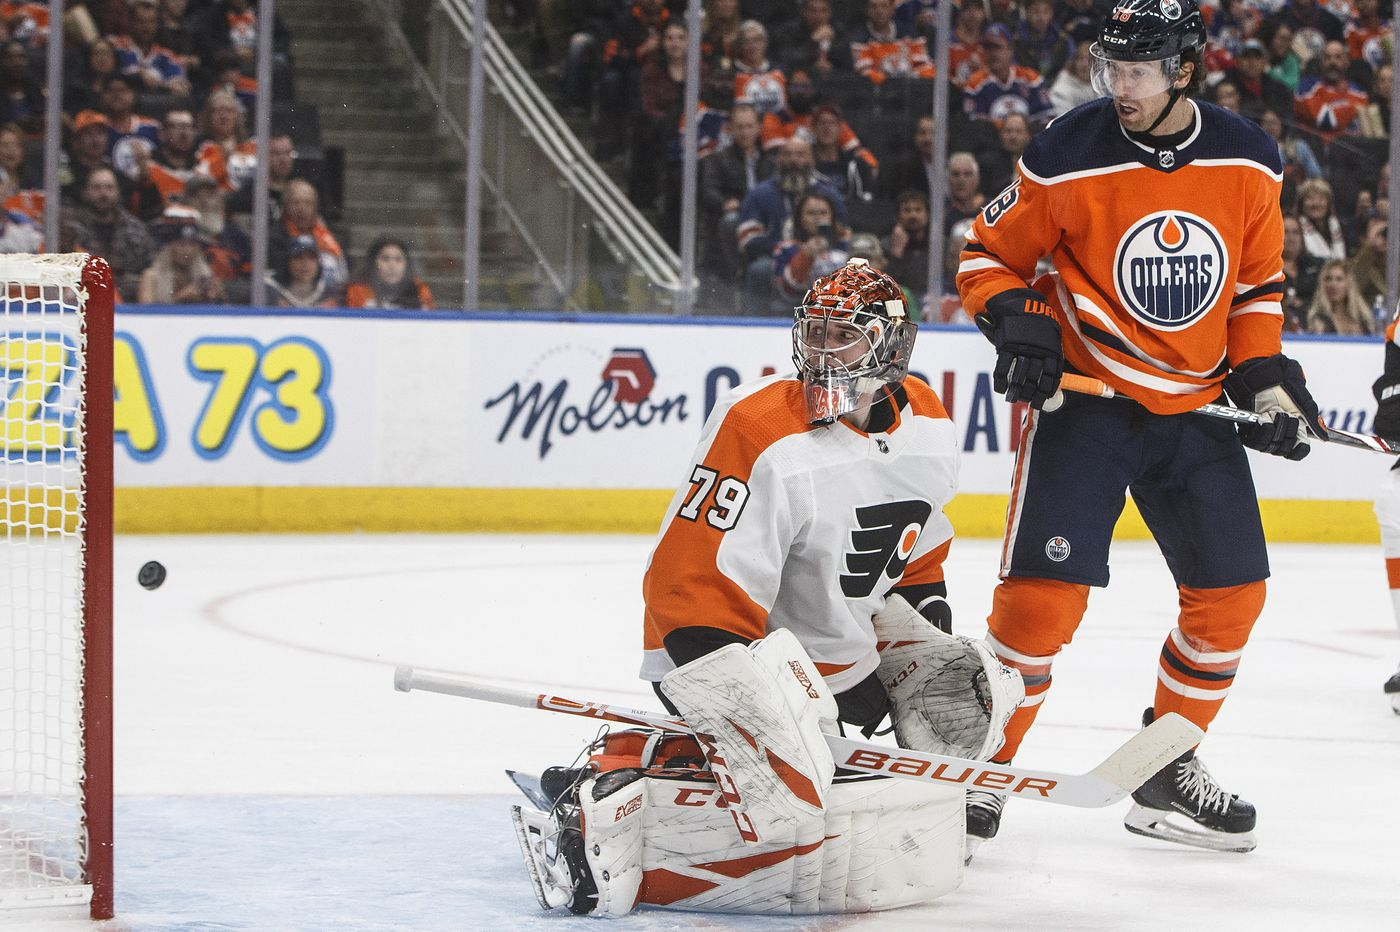 Flyers come out shooting, but mostly blanks in lopsided loss in Edmonton